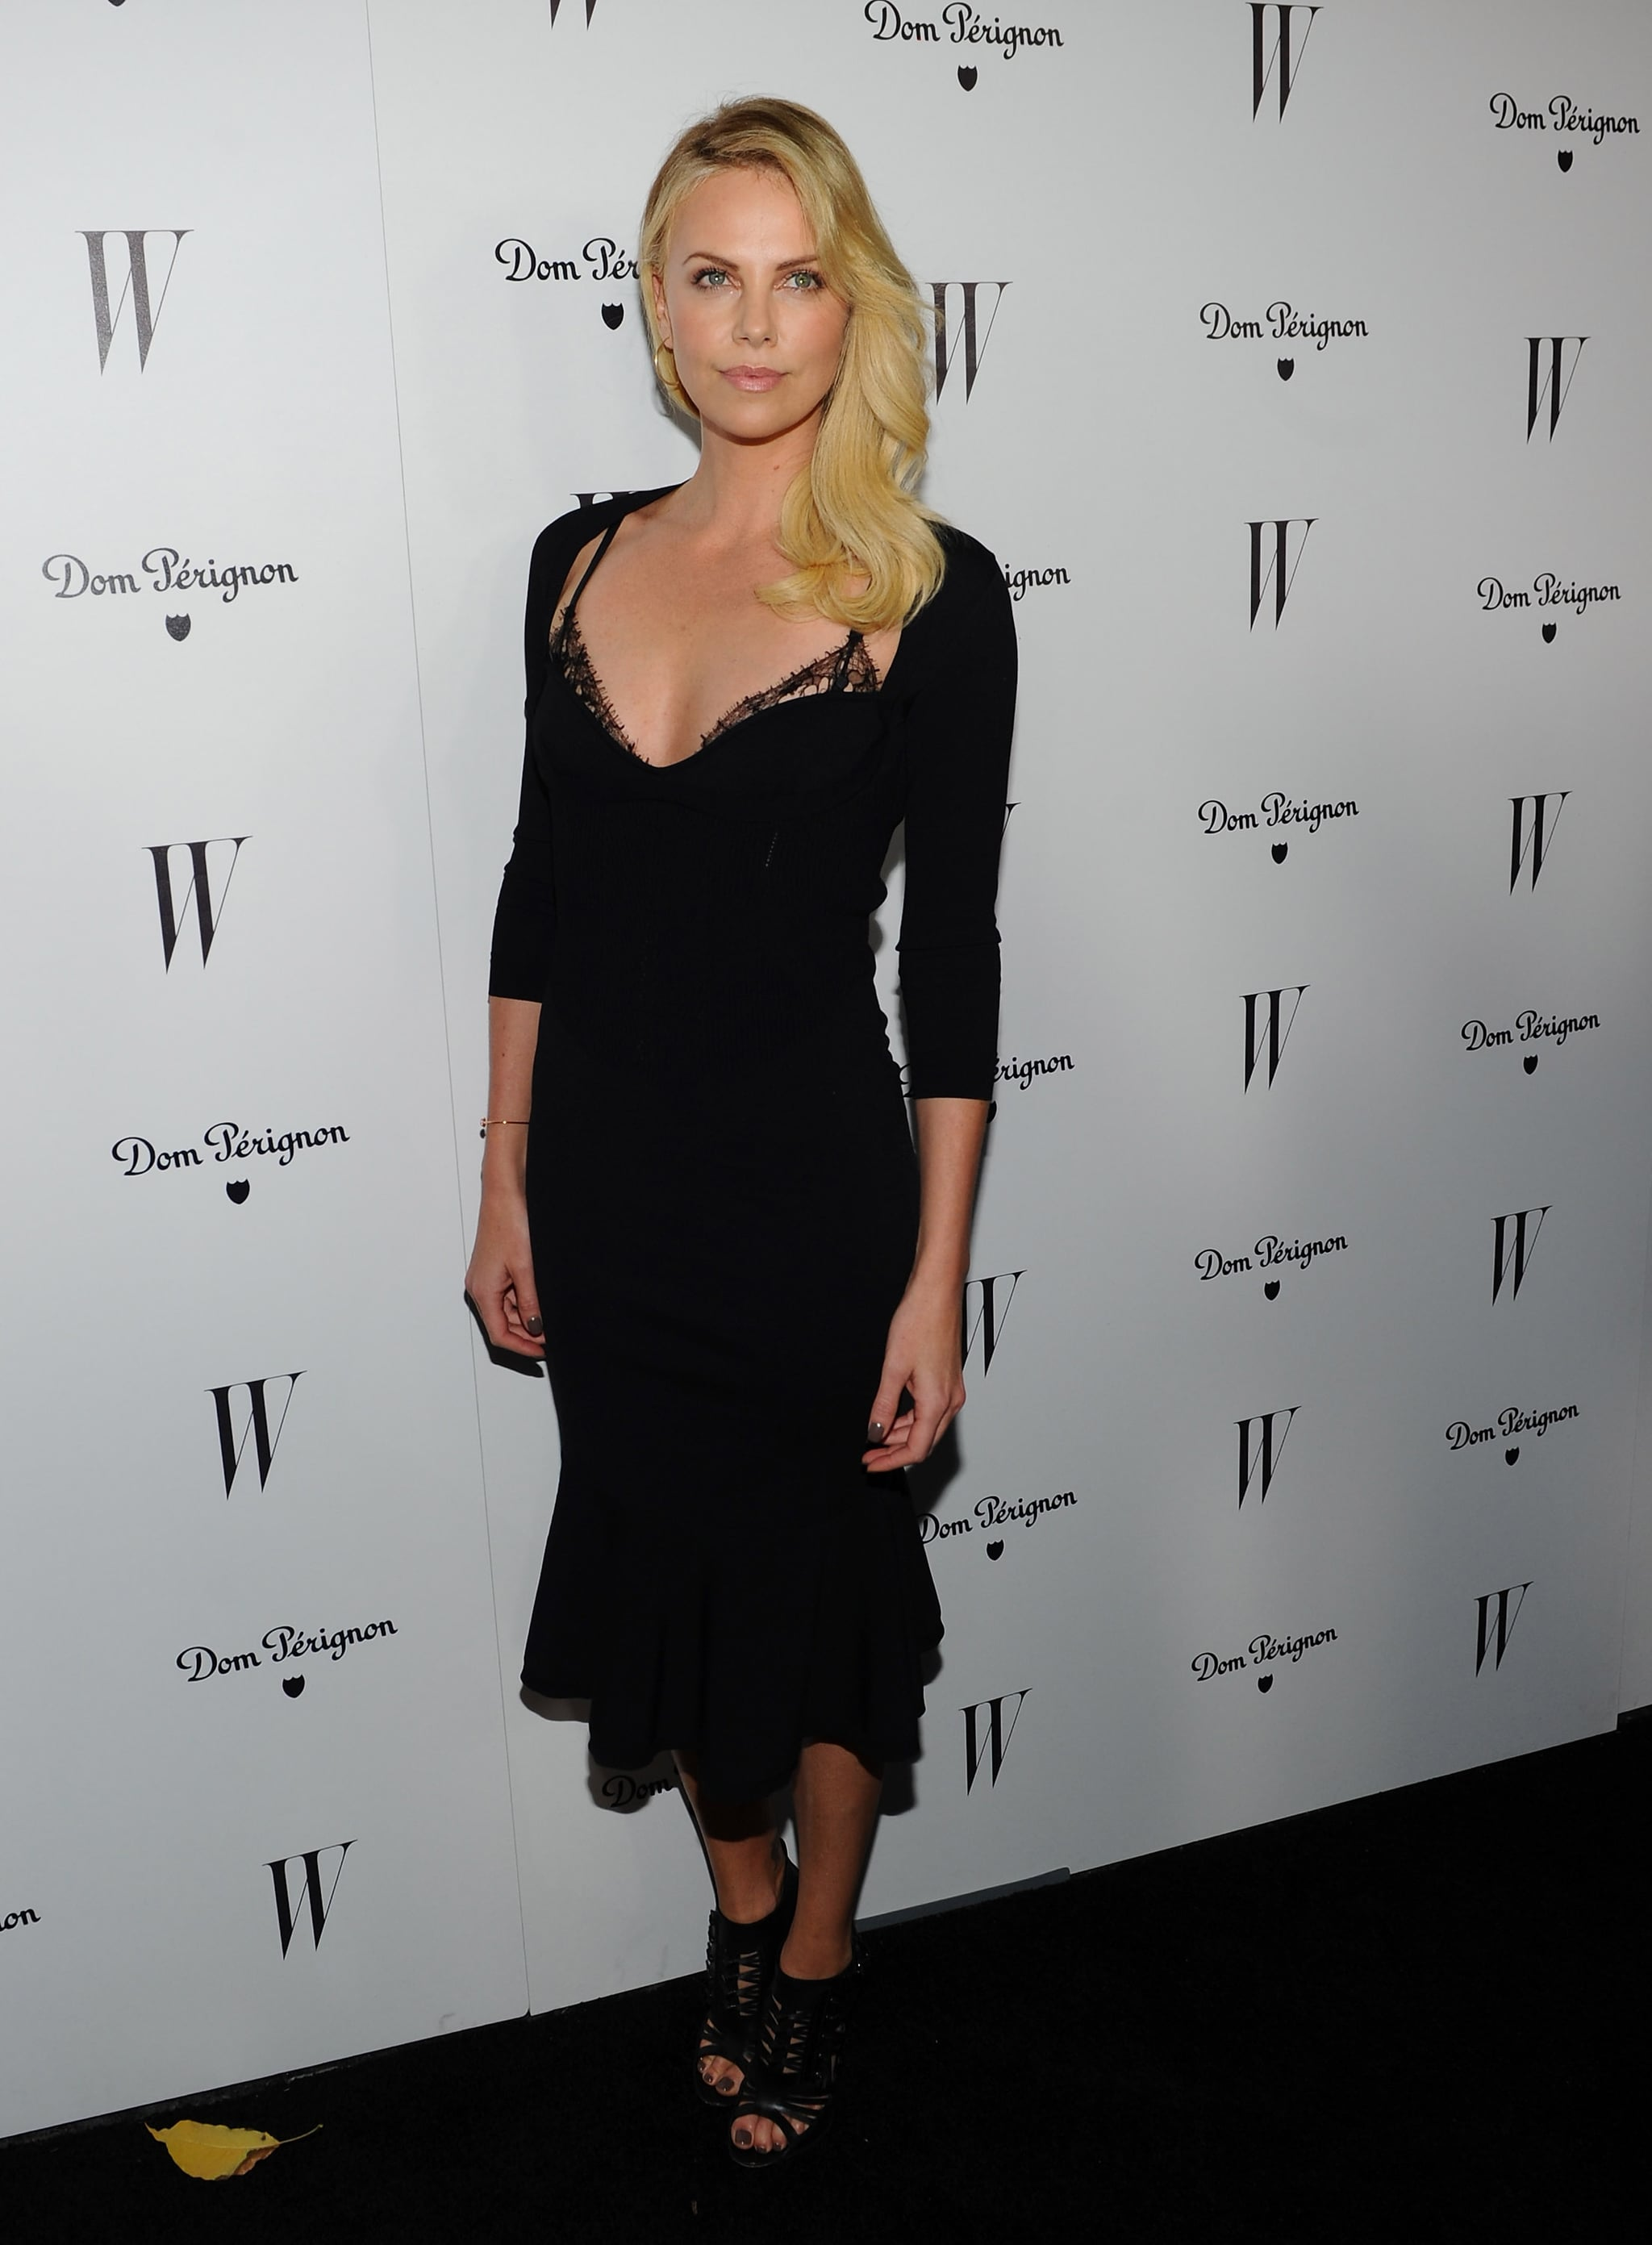 Letting a little lace peek through was the name of the game for Charlize when she wore this slinky black Alexander McQueen dress in early 2012.